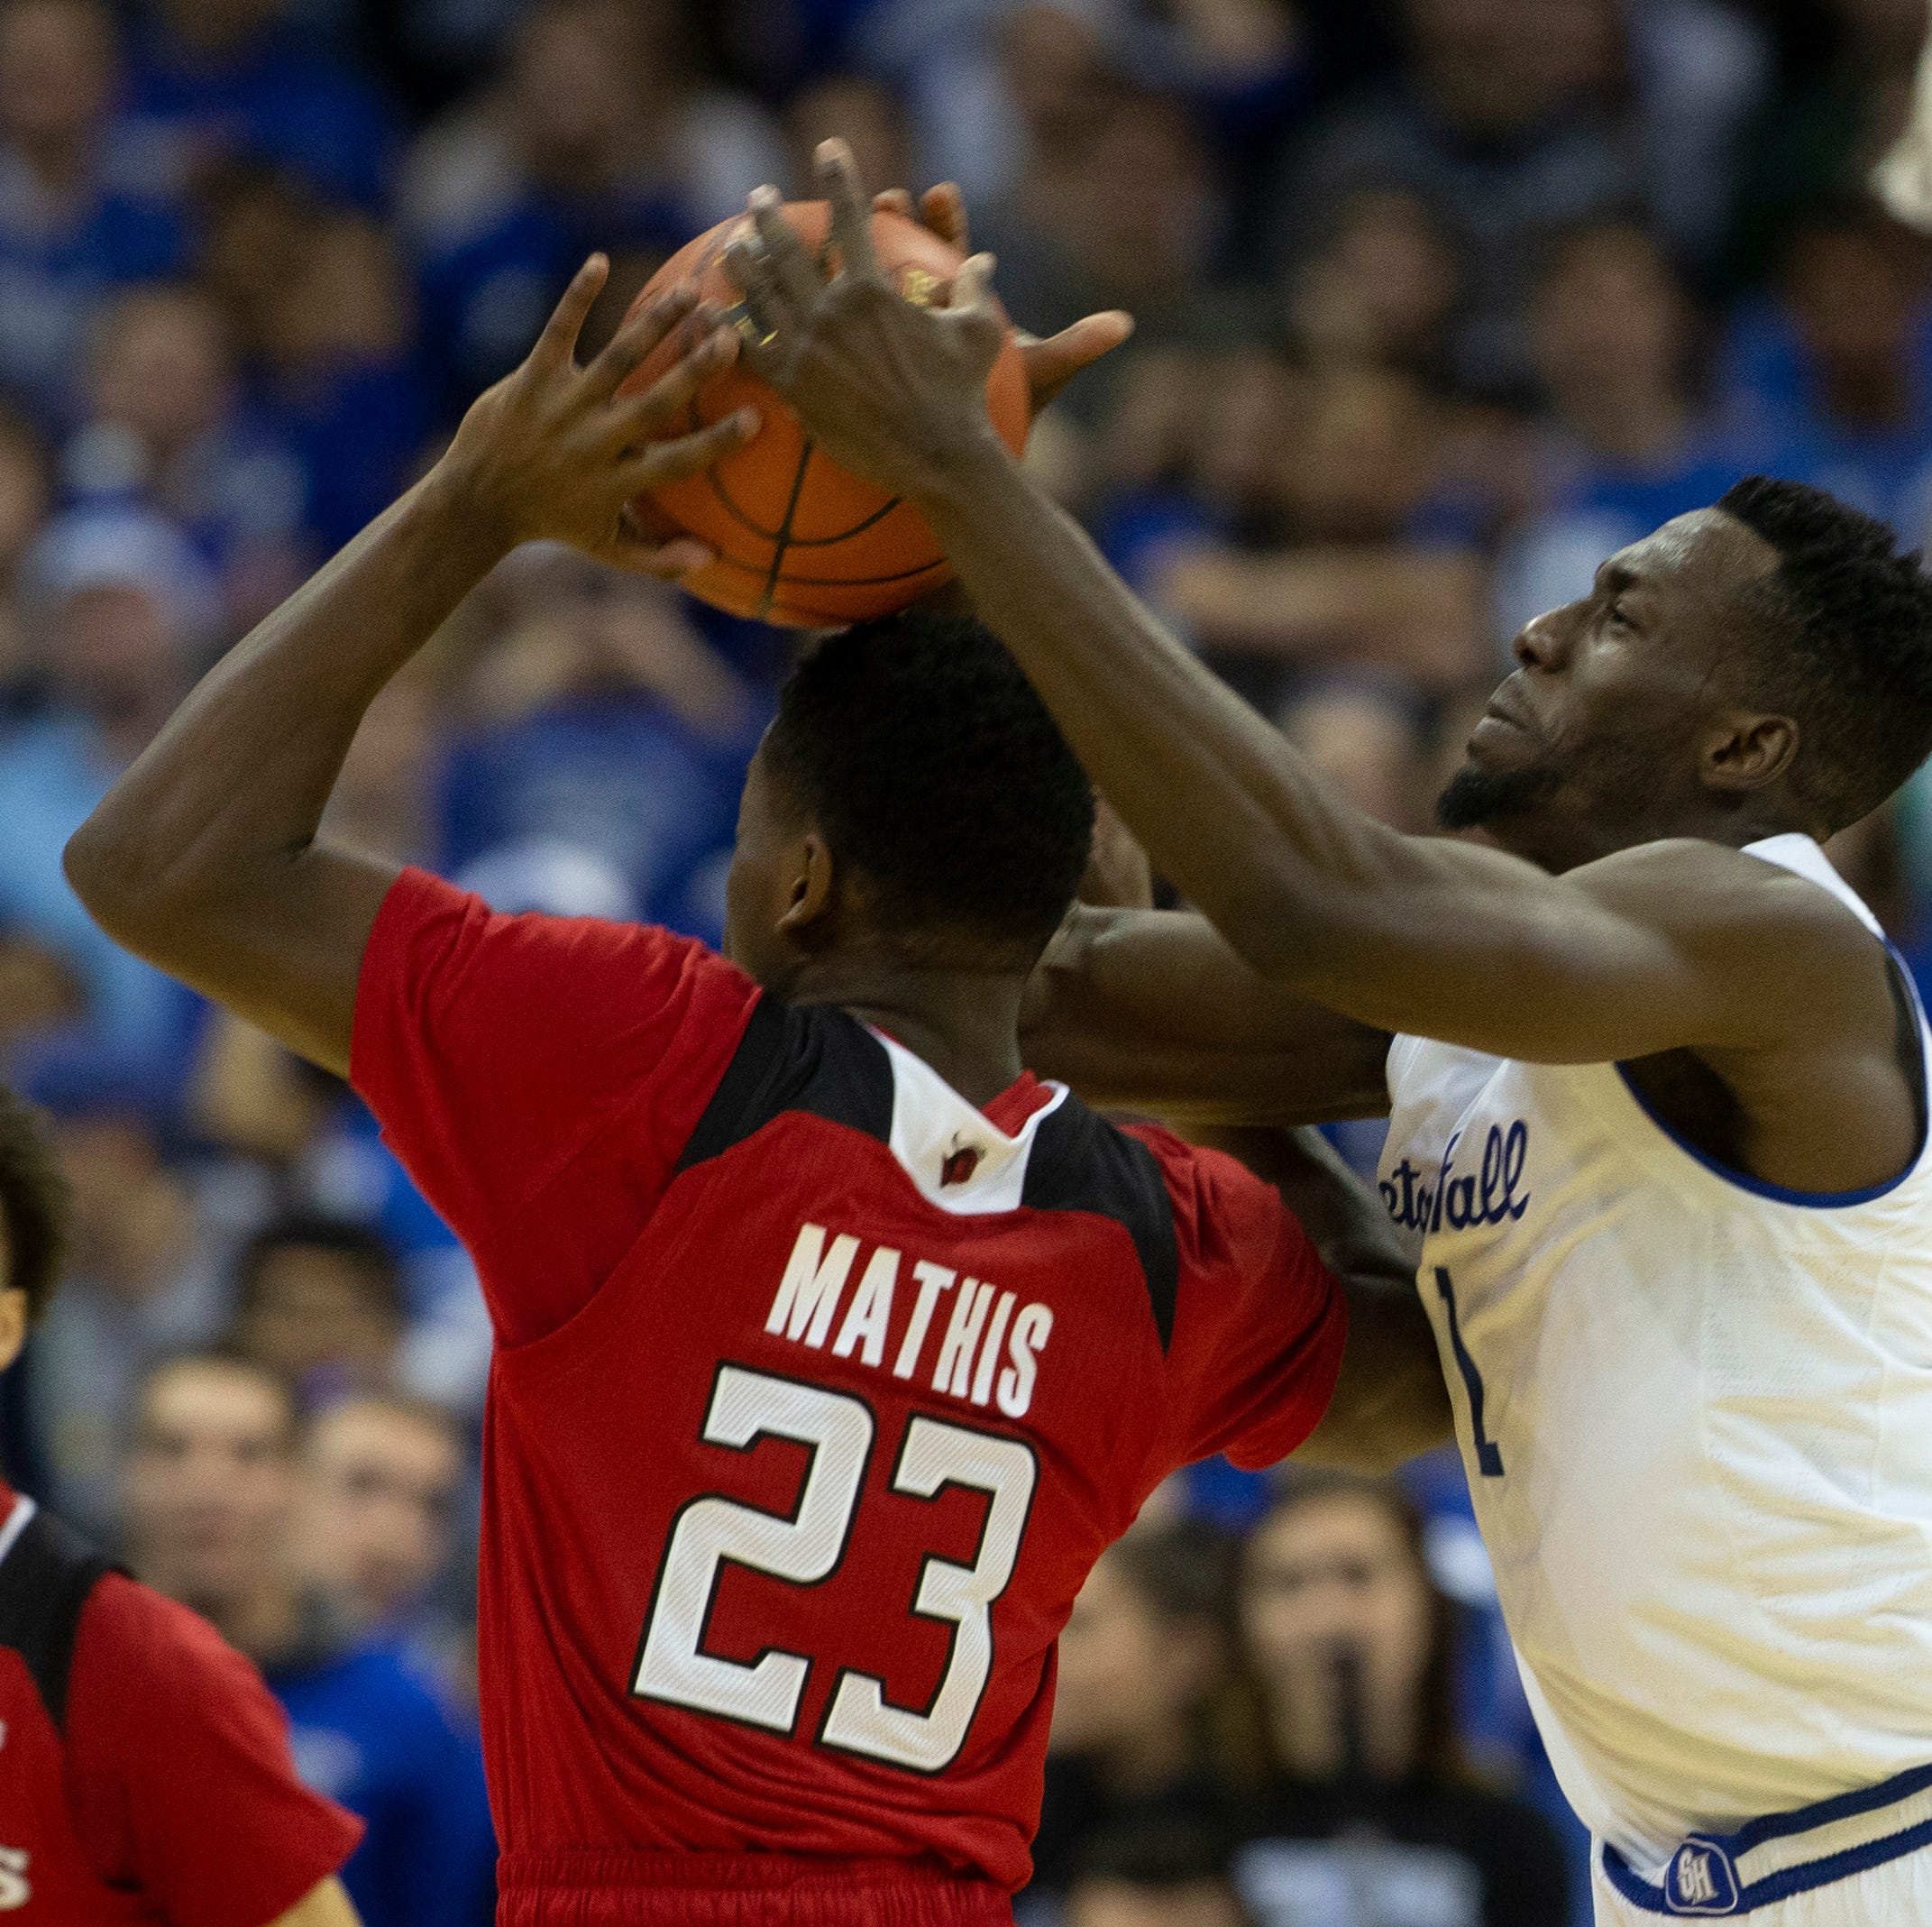 Sparks fly as Myles Powell leads Seton Hall basketball to revenge win over Rutgers